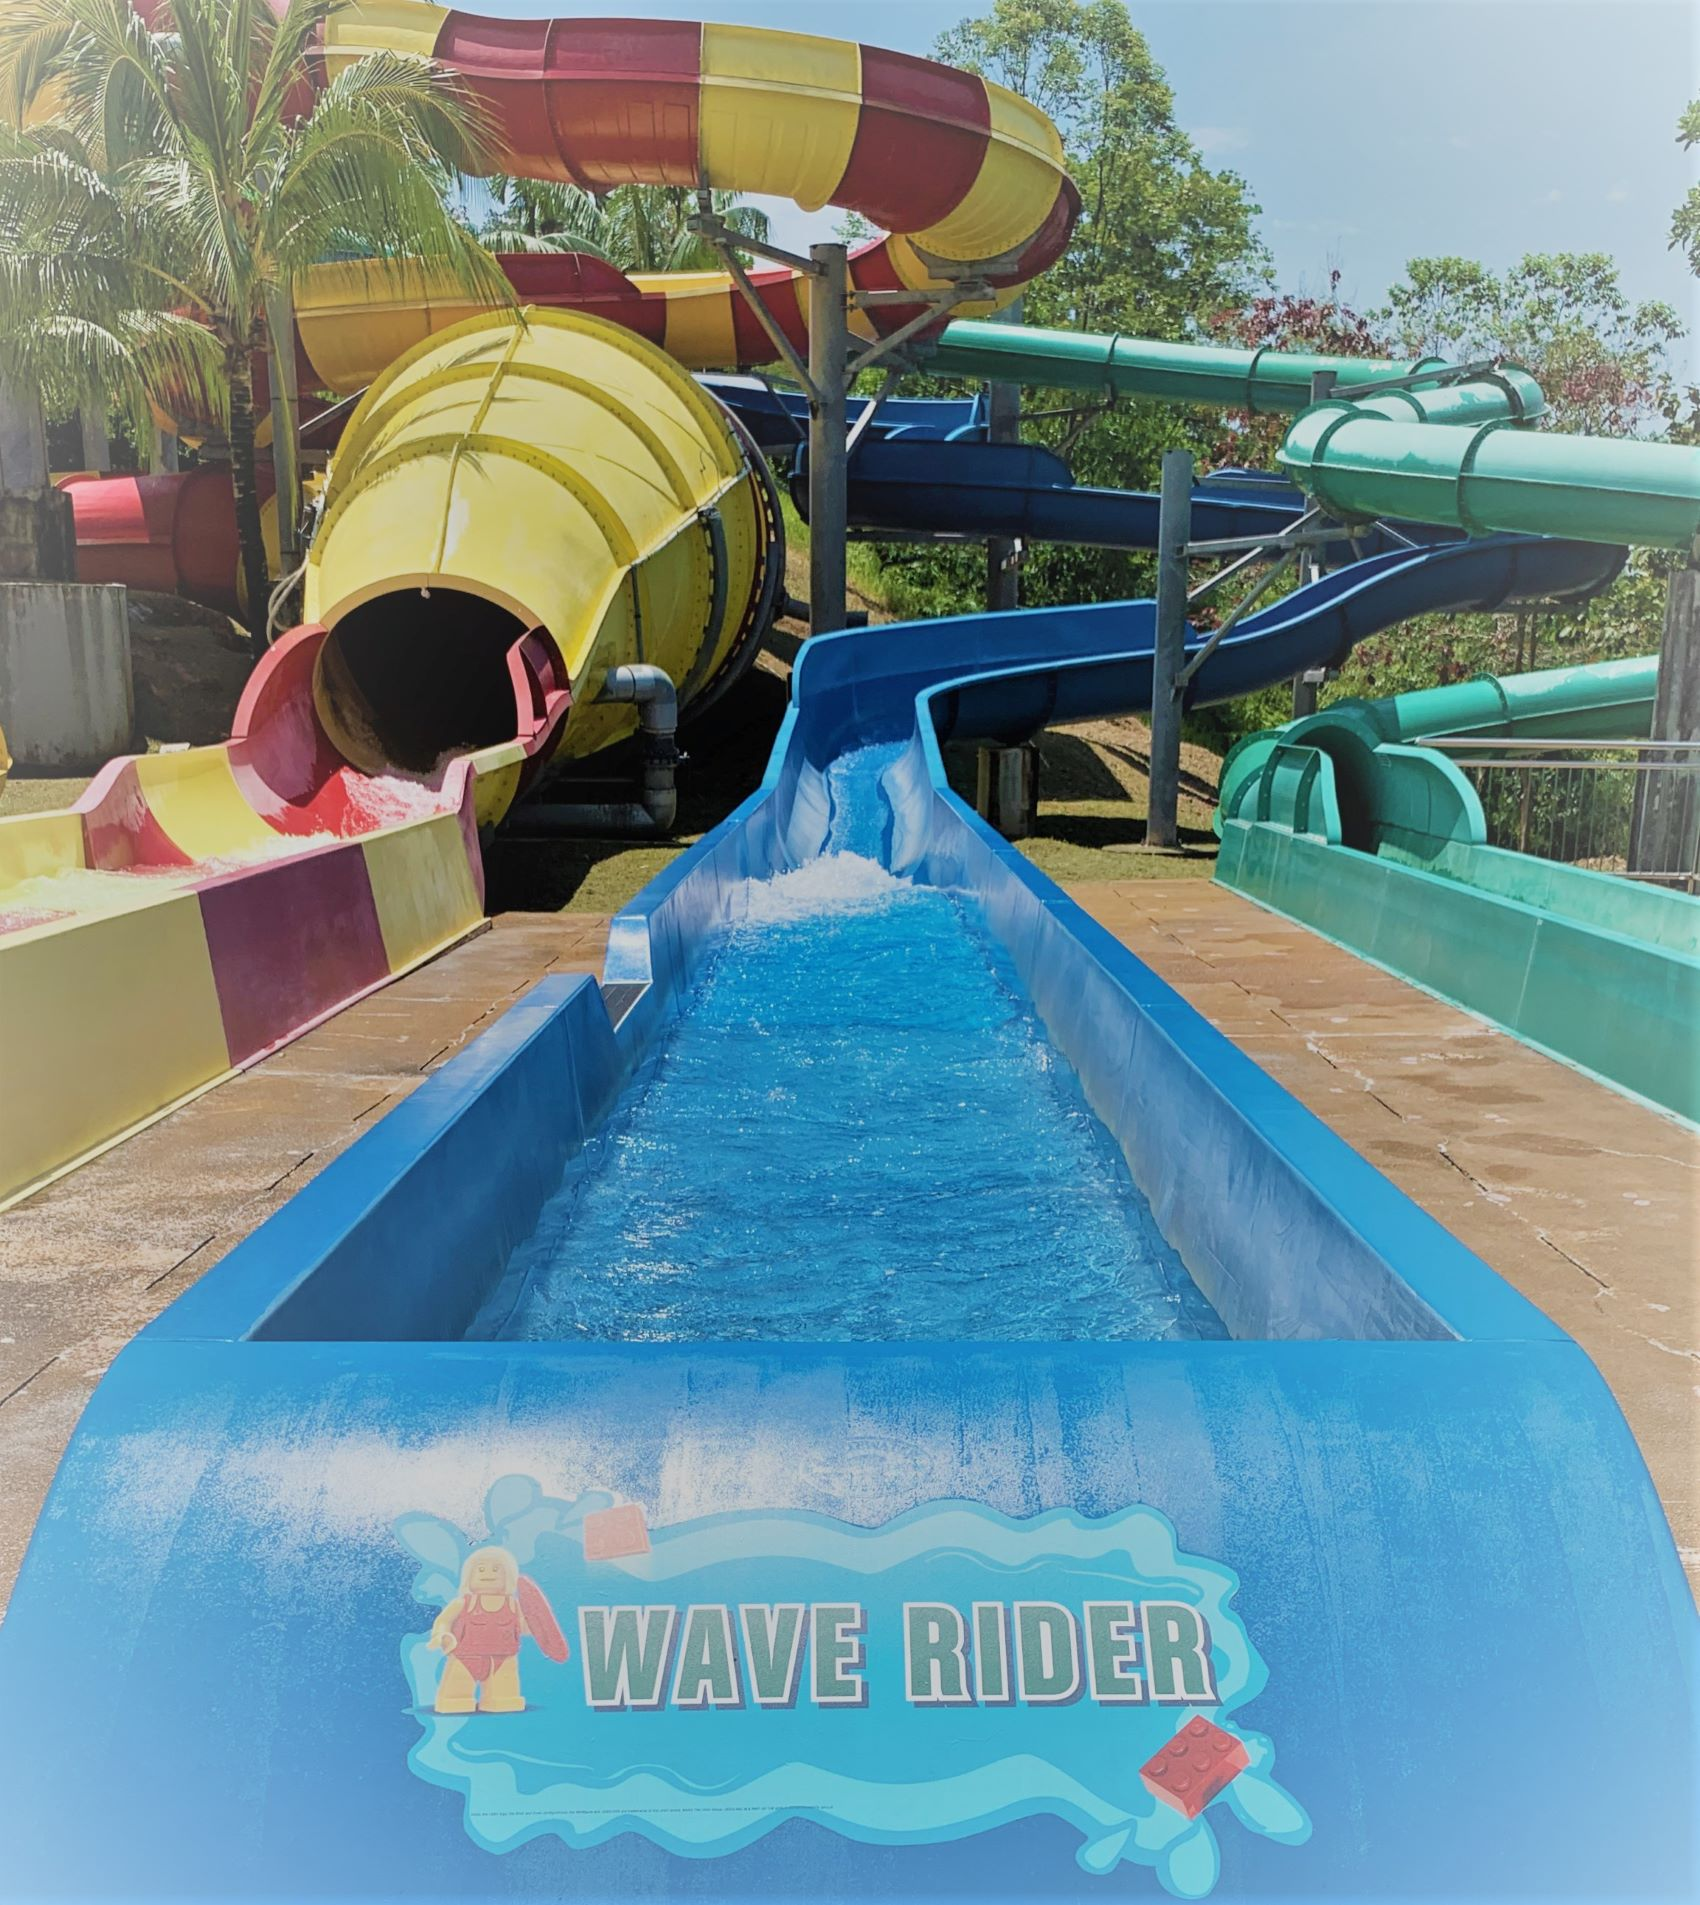 Wave Rider at LEGOLAND Water Park